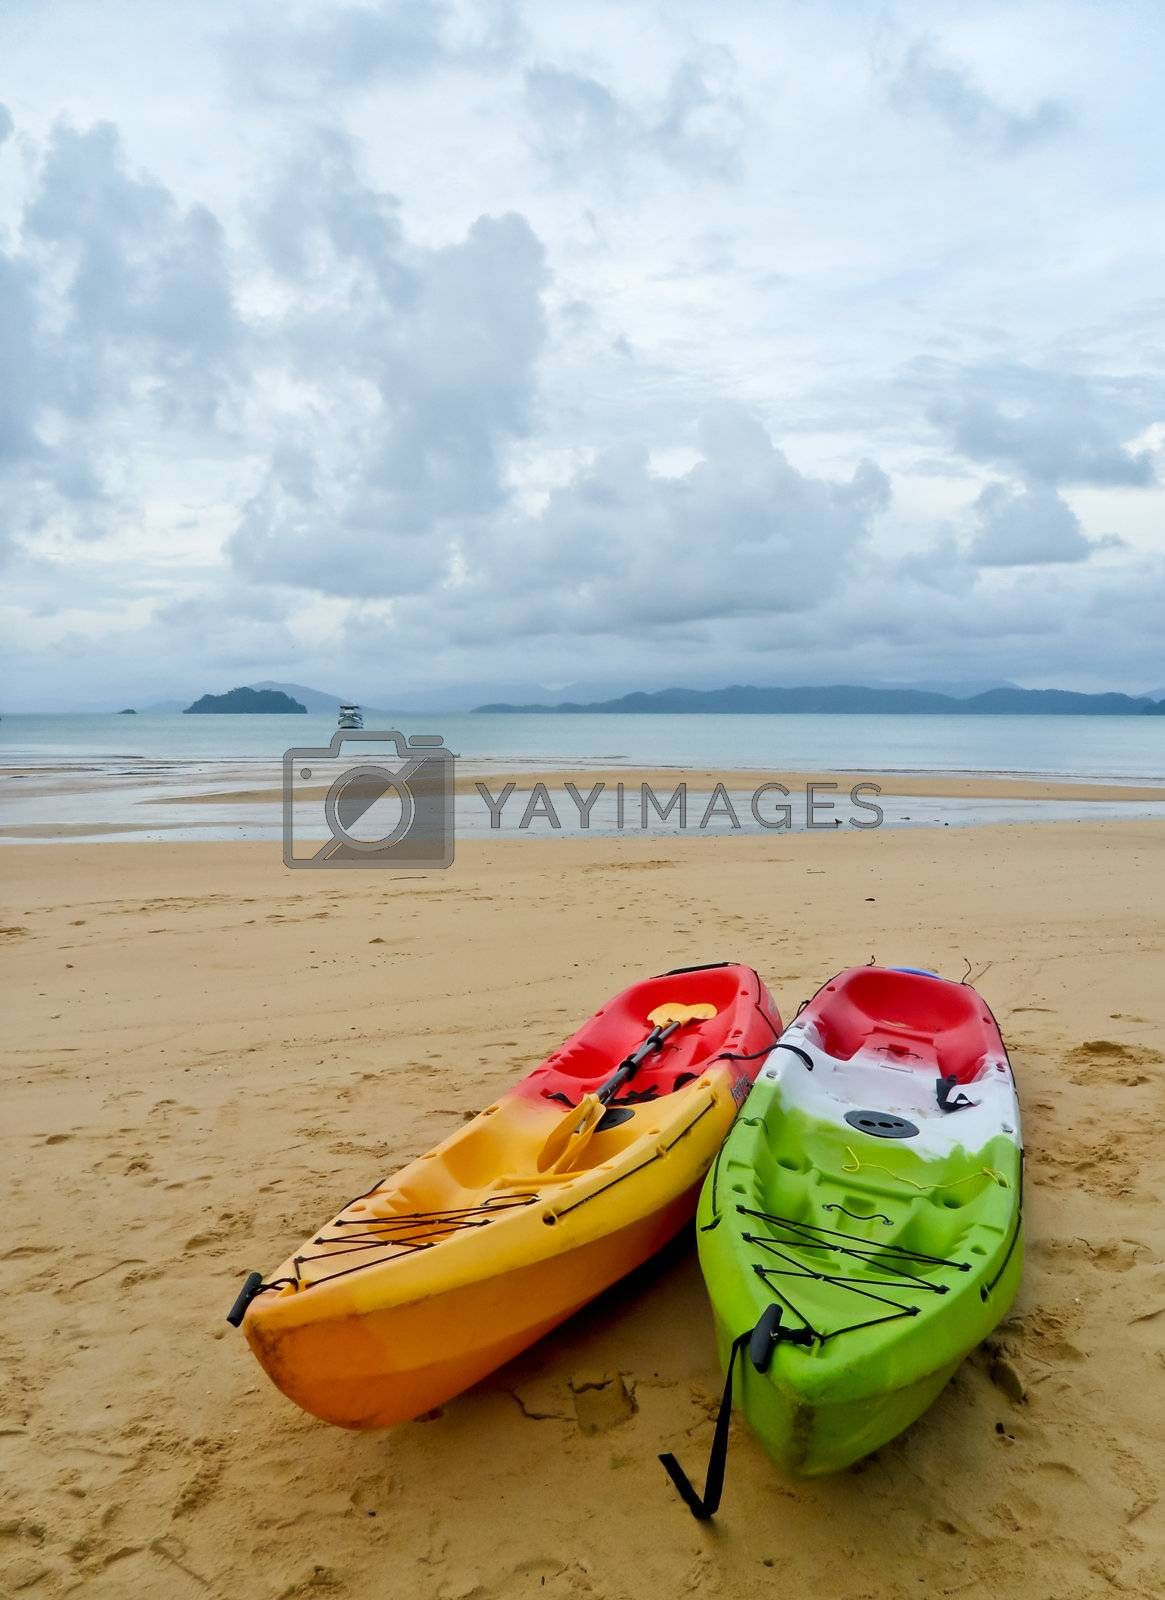 The two colorful kayak on the cloudy beach